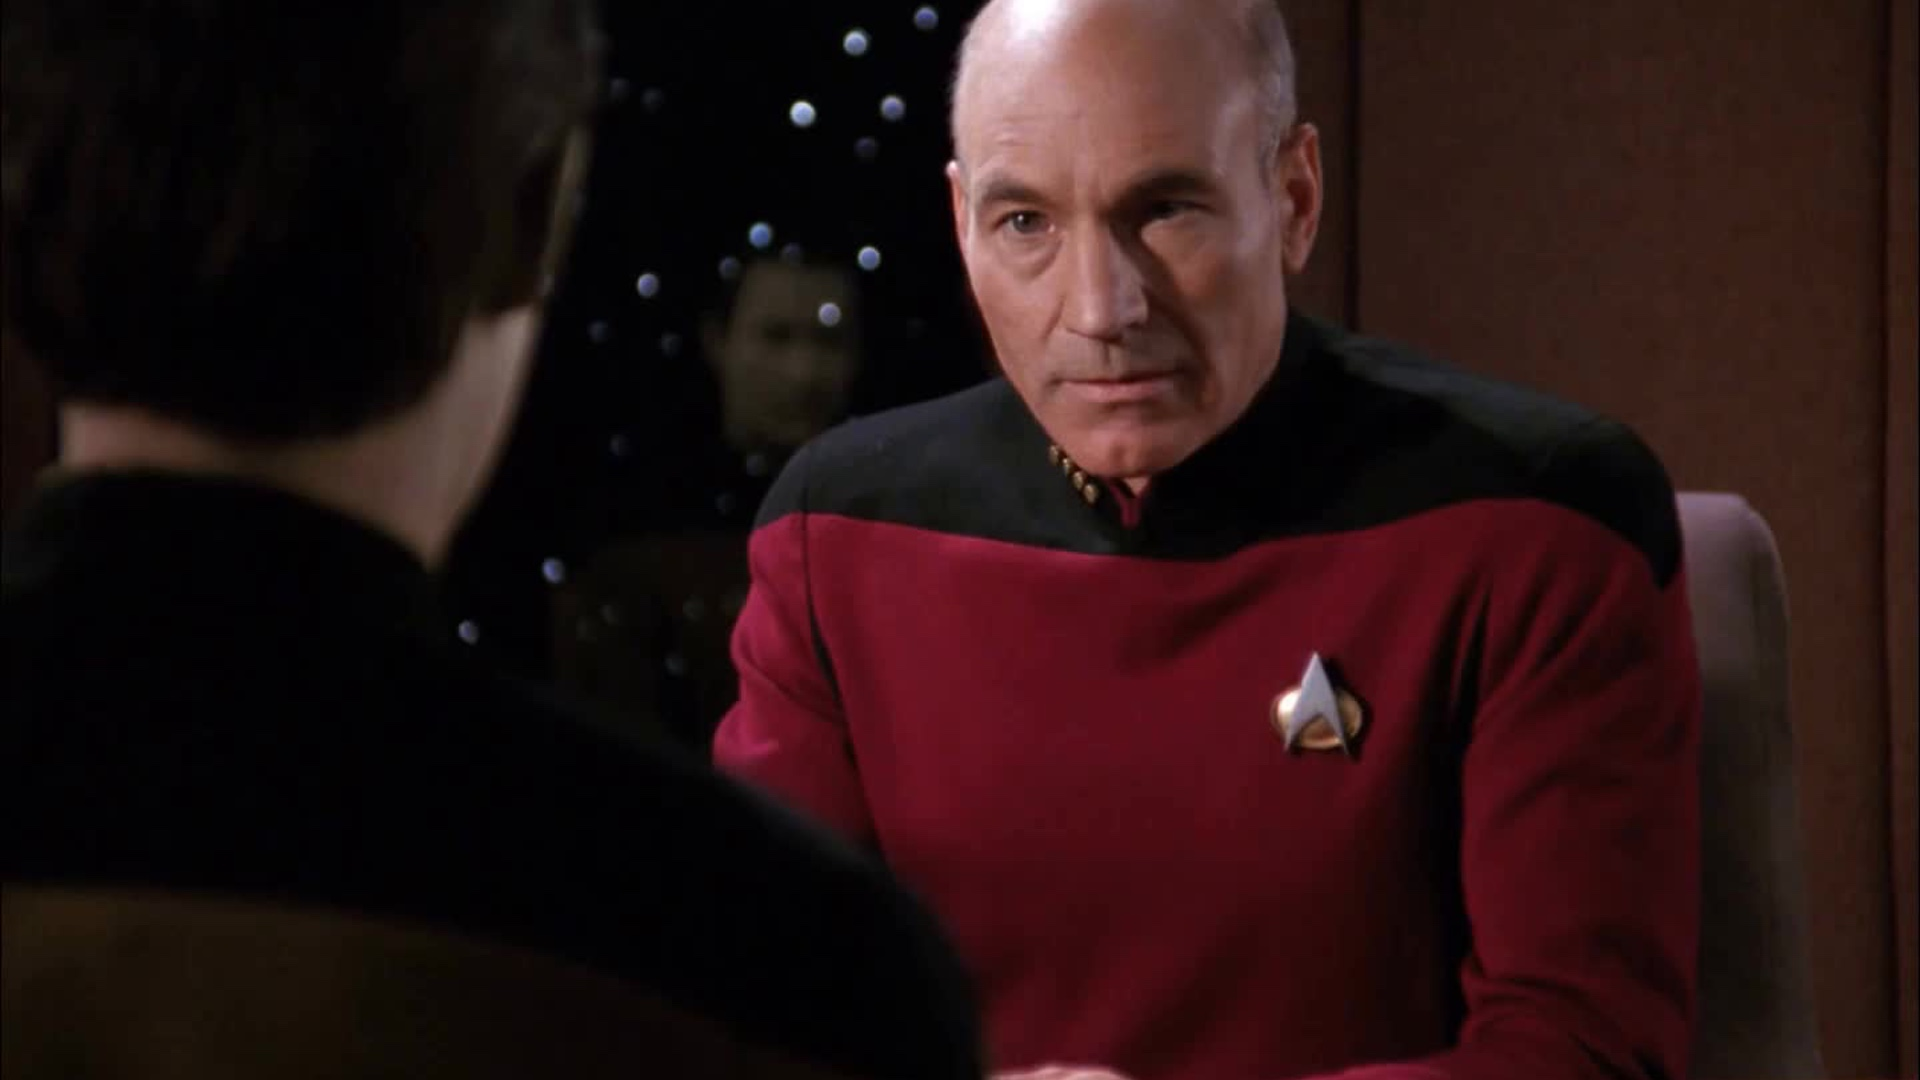 new-character-and-story-details-for-the-upcoming-star-trek-picard-series-social.jpg